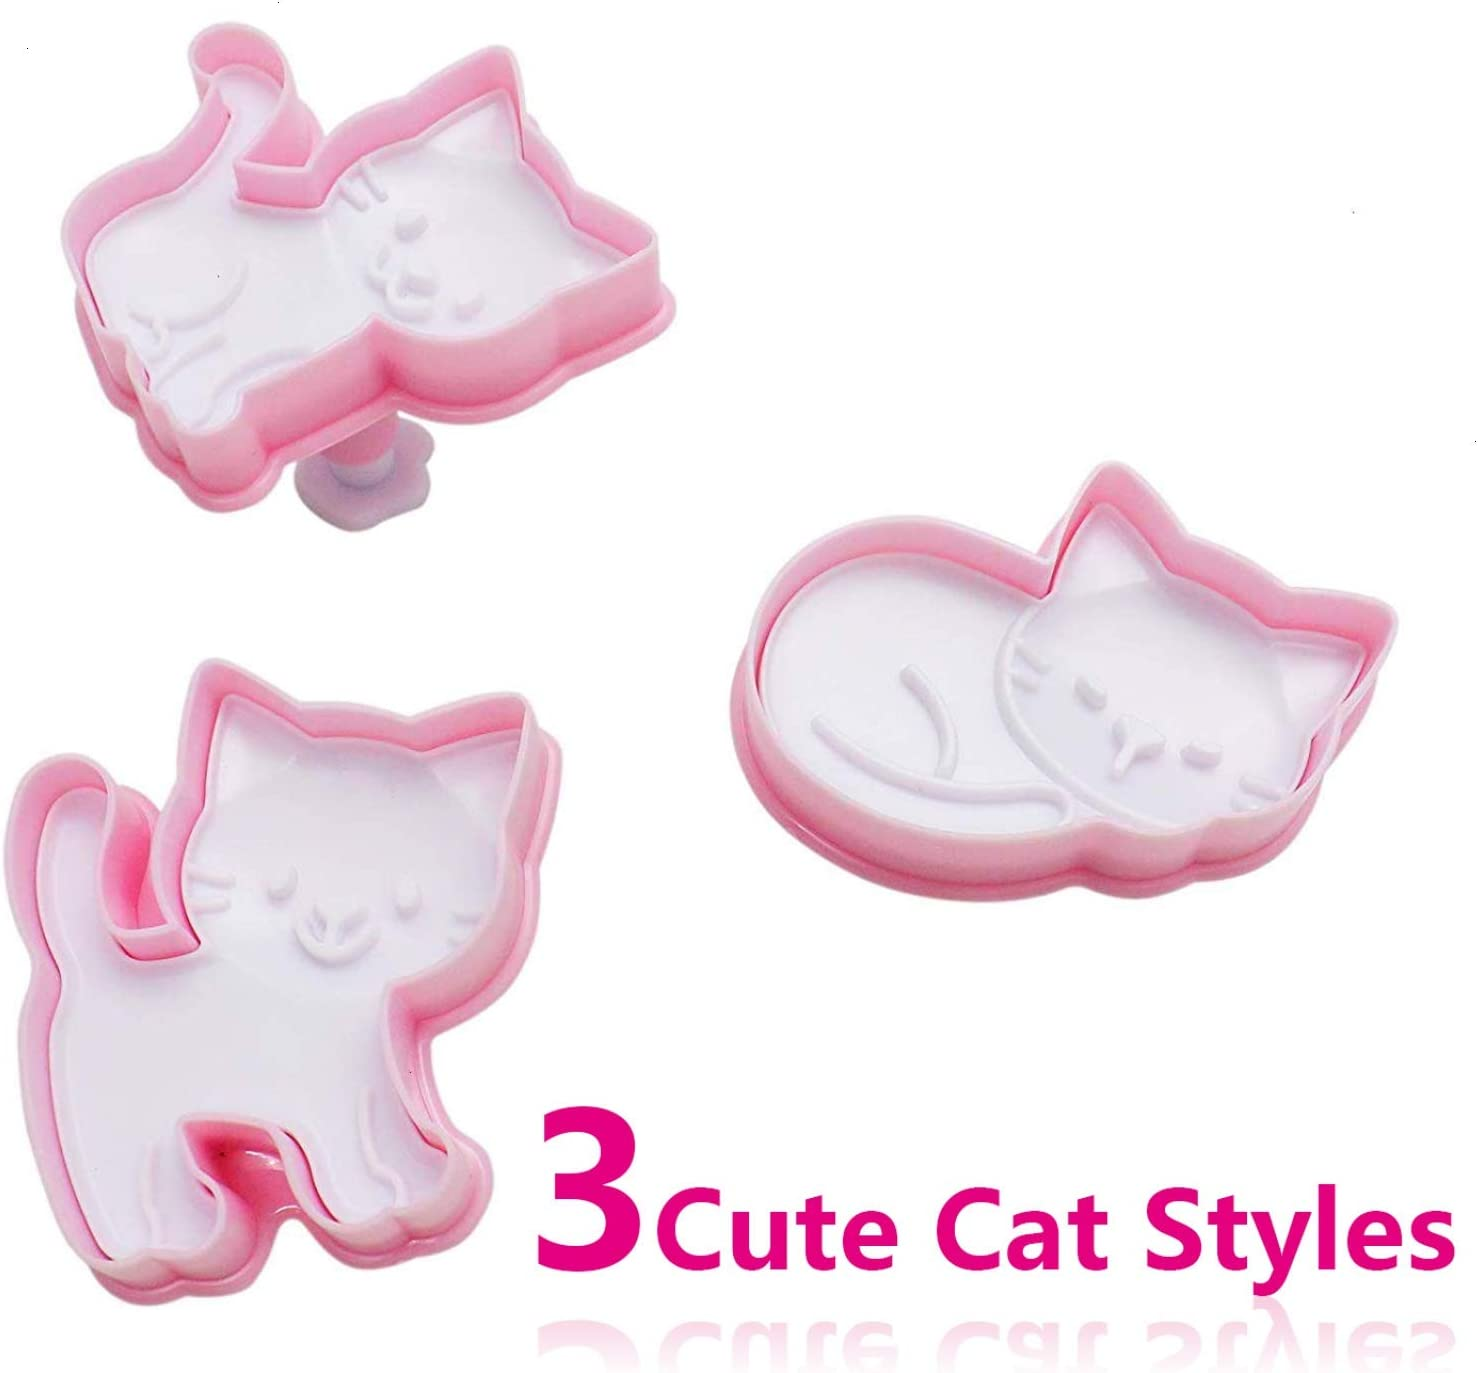 Timoo Cat Shaped Animal Plunger Cookie Cutters set for kids, Food Grade Pocket Sandwich Bread mold, 3pcs